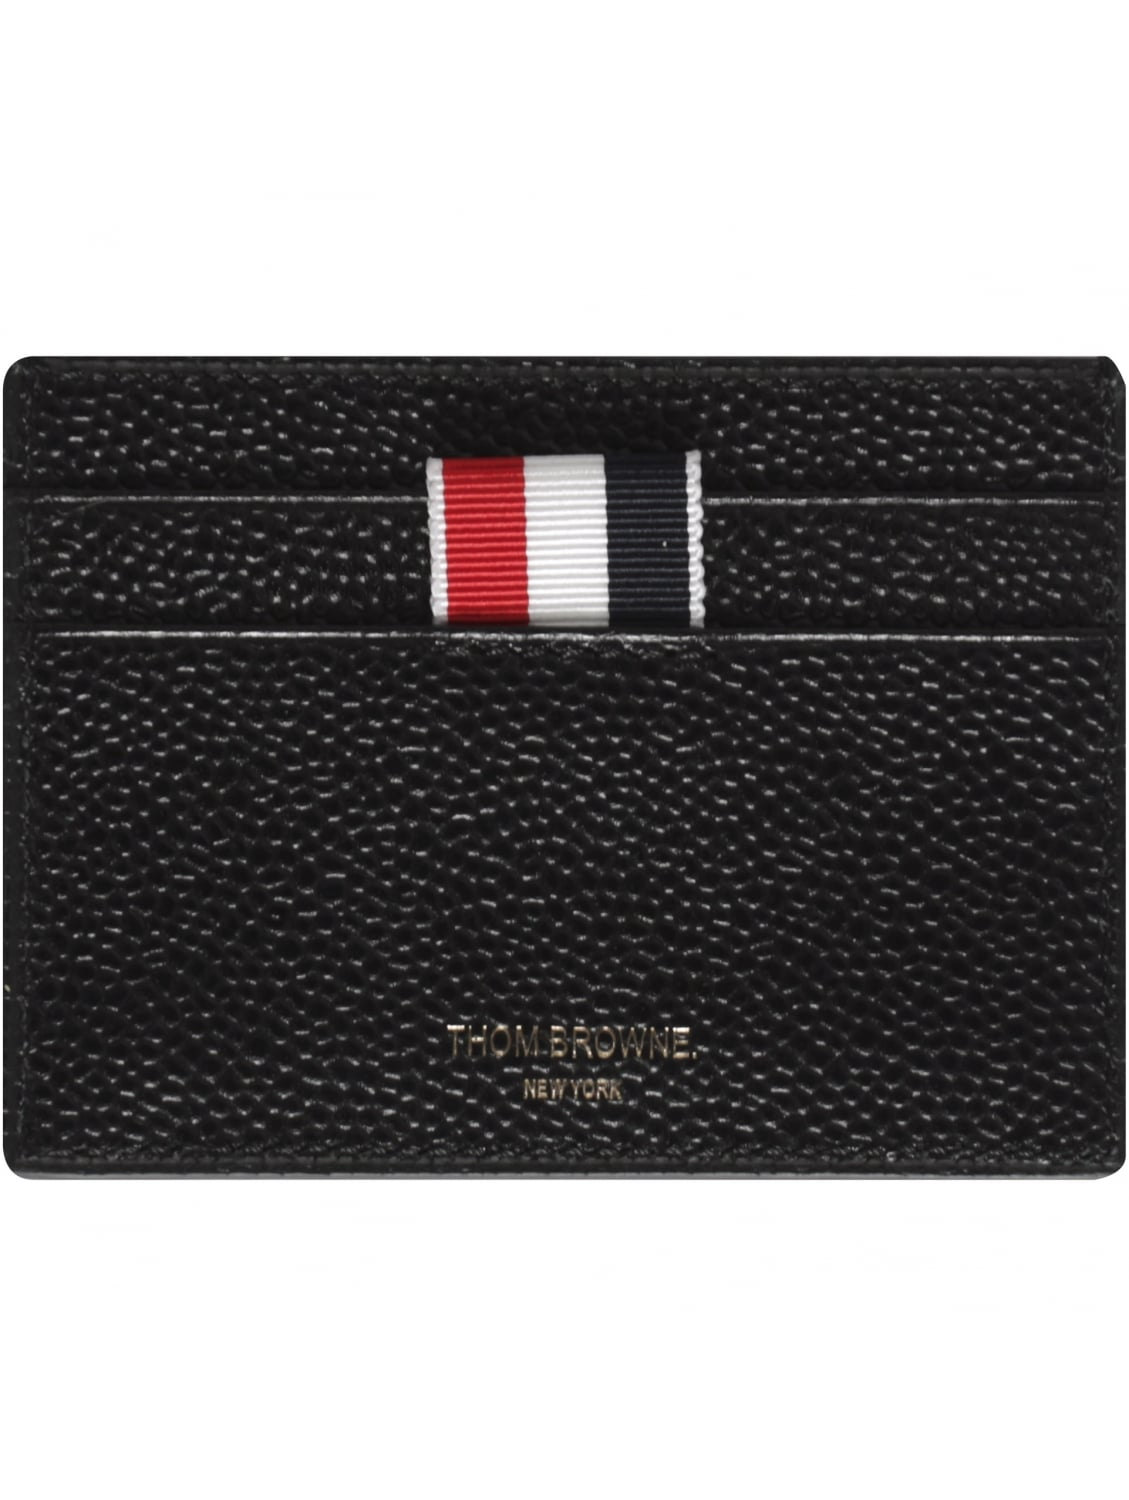 holder black single women Buy thom browne black hector single card holder on ssensecom and get free shipping & returns in us 'pebble grain' calfskin card holder in black gold-tone logo stamp and signature tricolor.